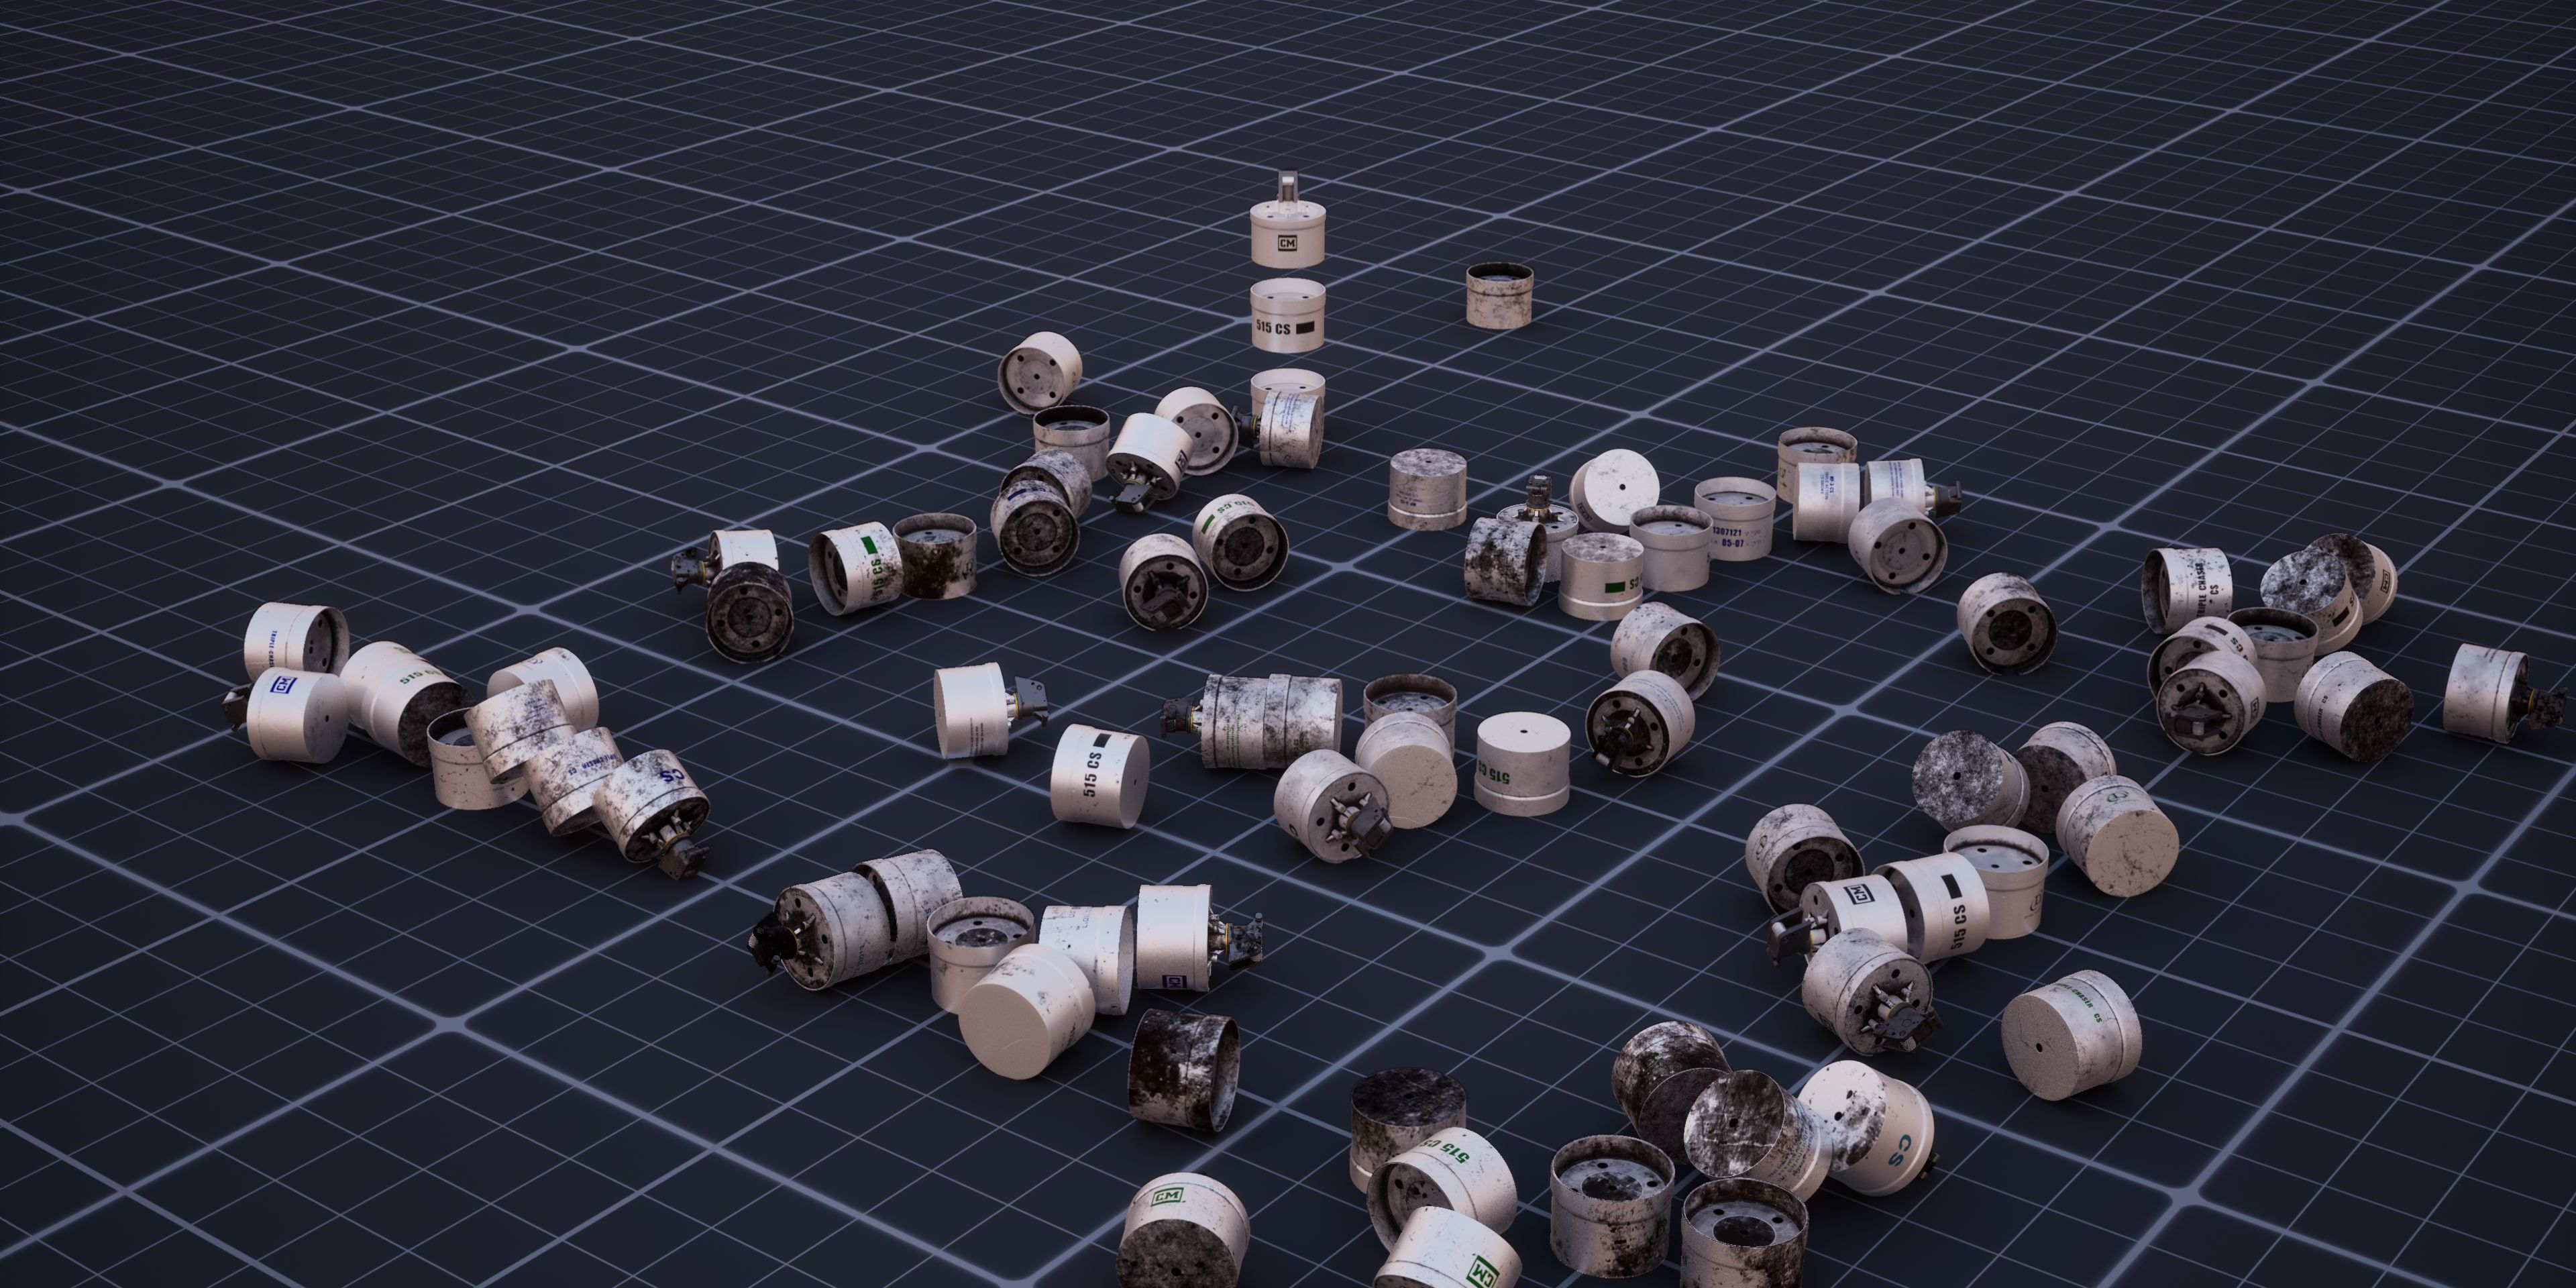 Forensic Architecture, Triple-Chaser, 2019, video, color, sound, 10 minutes 24 seconds. 3-D models of the Triple-Chaser grenade and images of used canisters, distributed in digital space, help train a computer vision classifier.